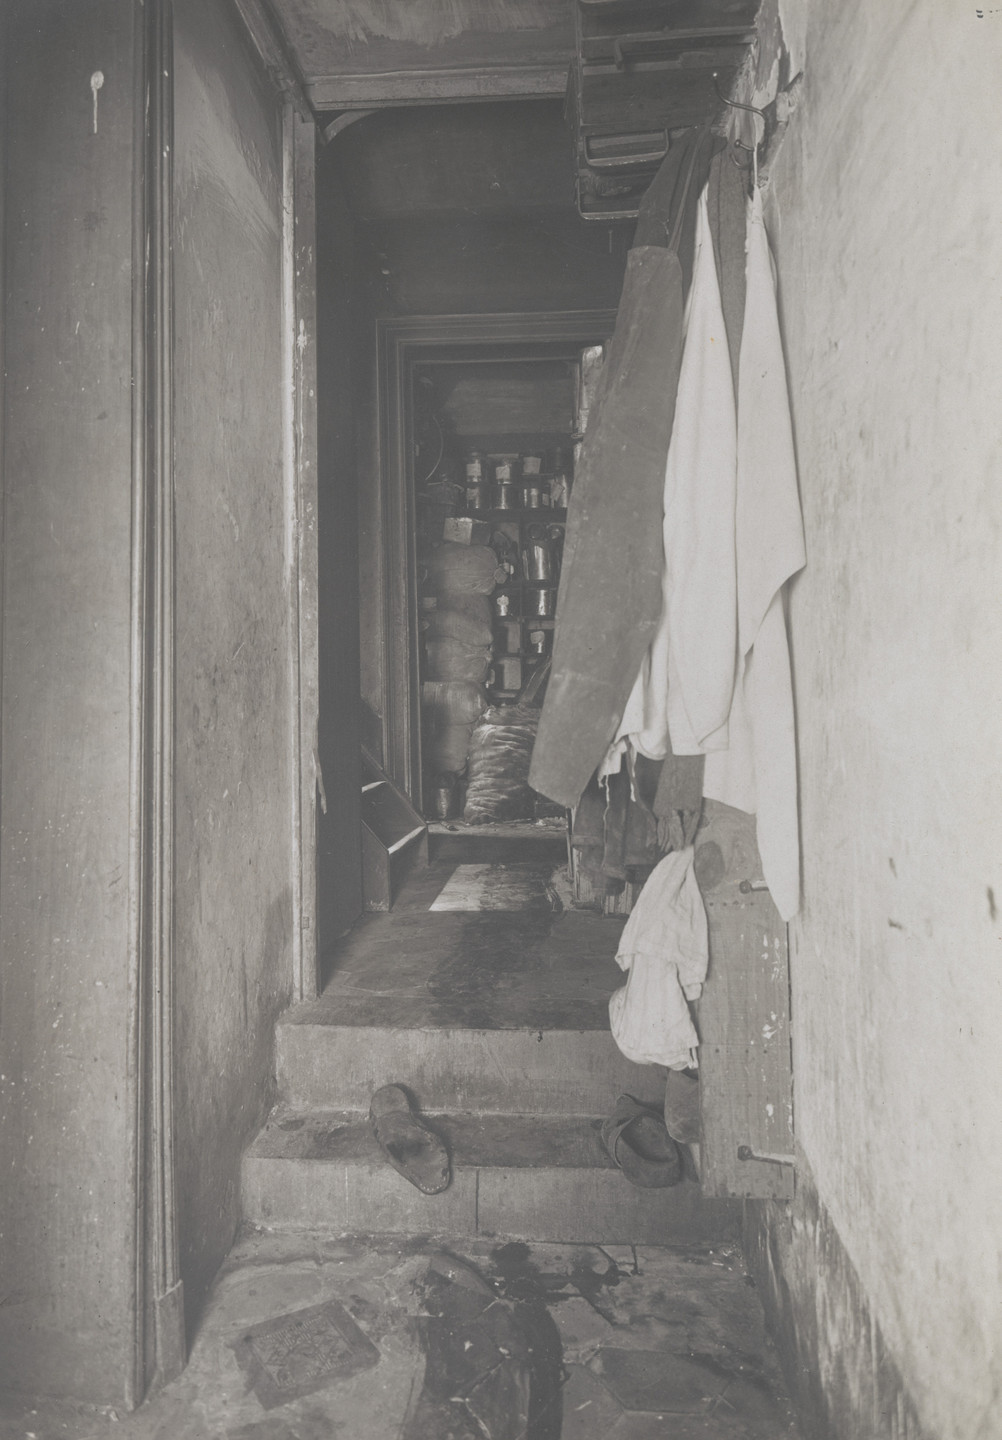 Unknown photographer. Untitled (crime scene: view down hall with shoes on steps). 1913